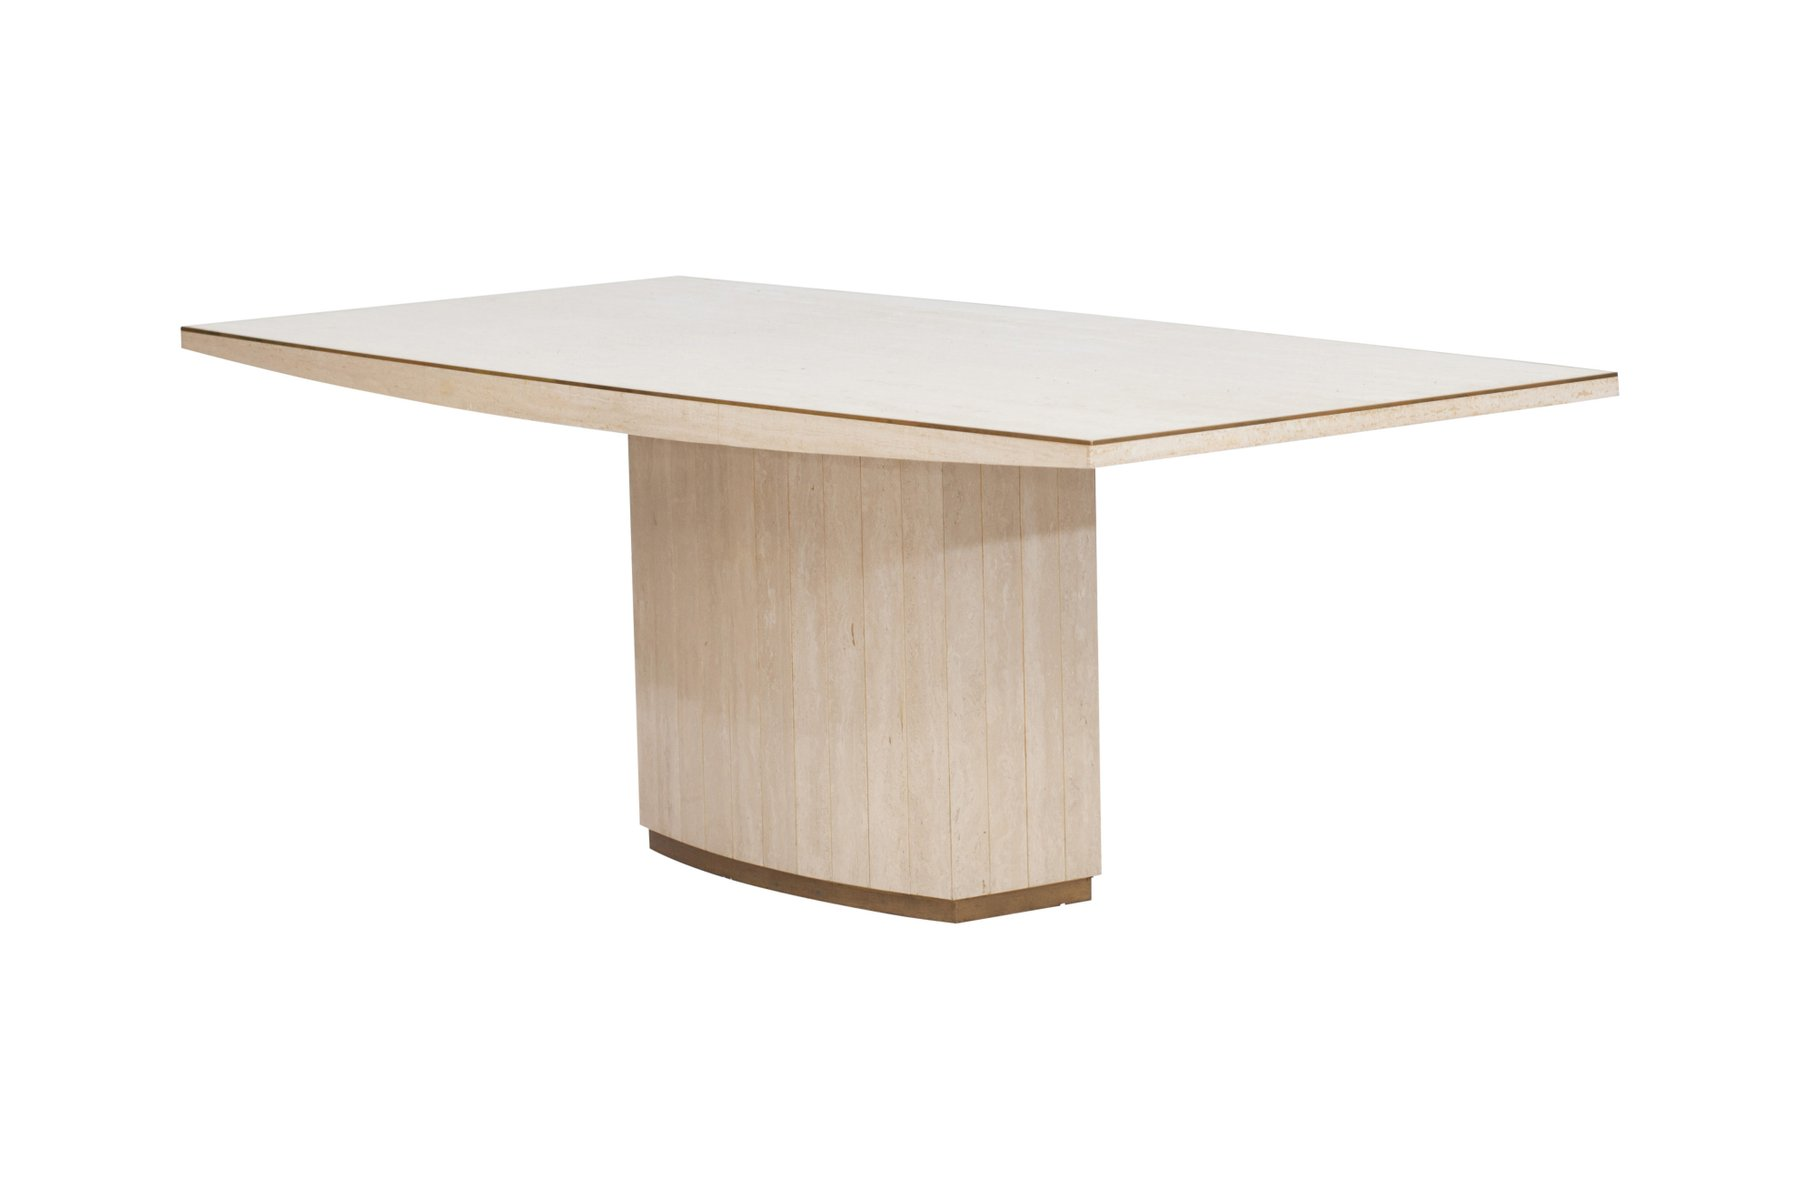 Travertine dining table by willy rizzo 1970s for sale at for Table willy rizzo